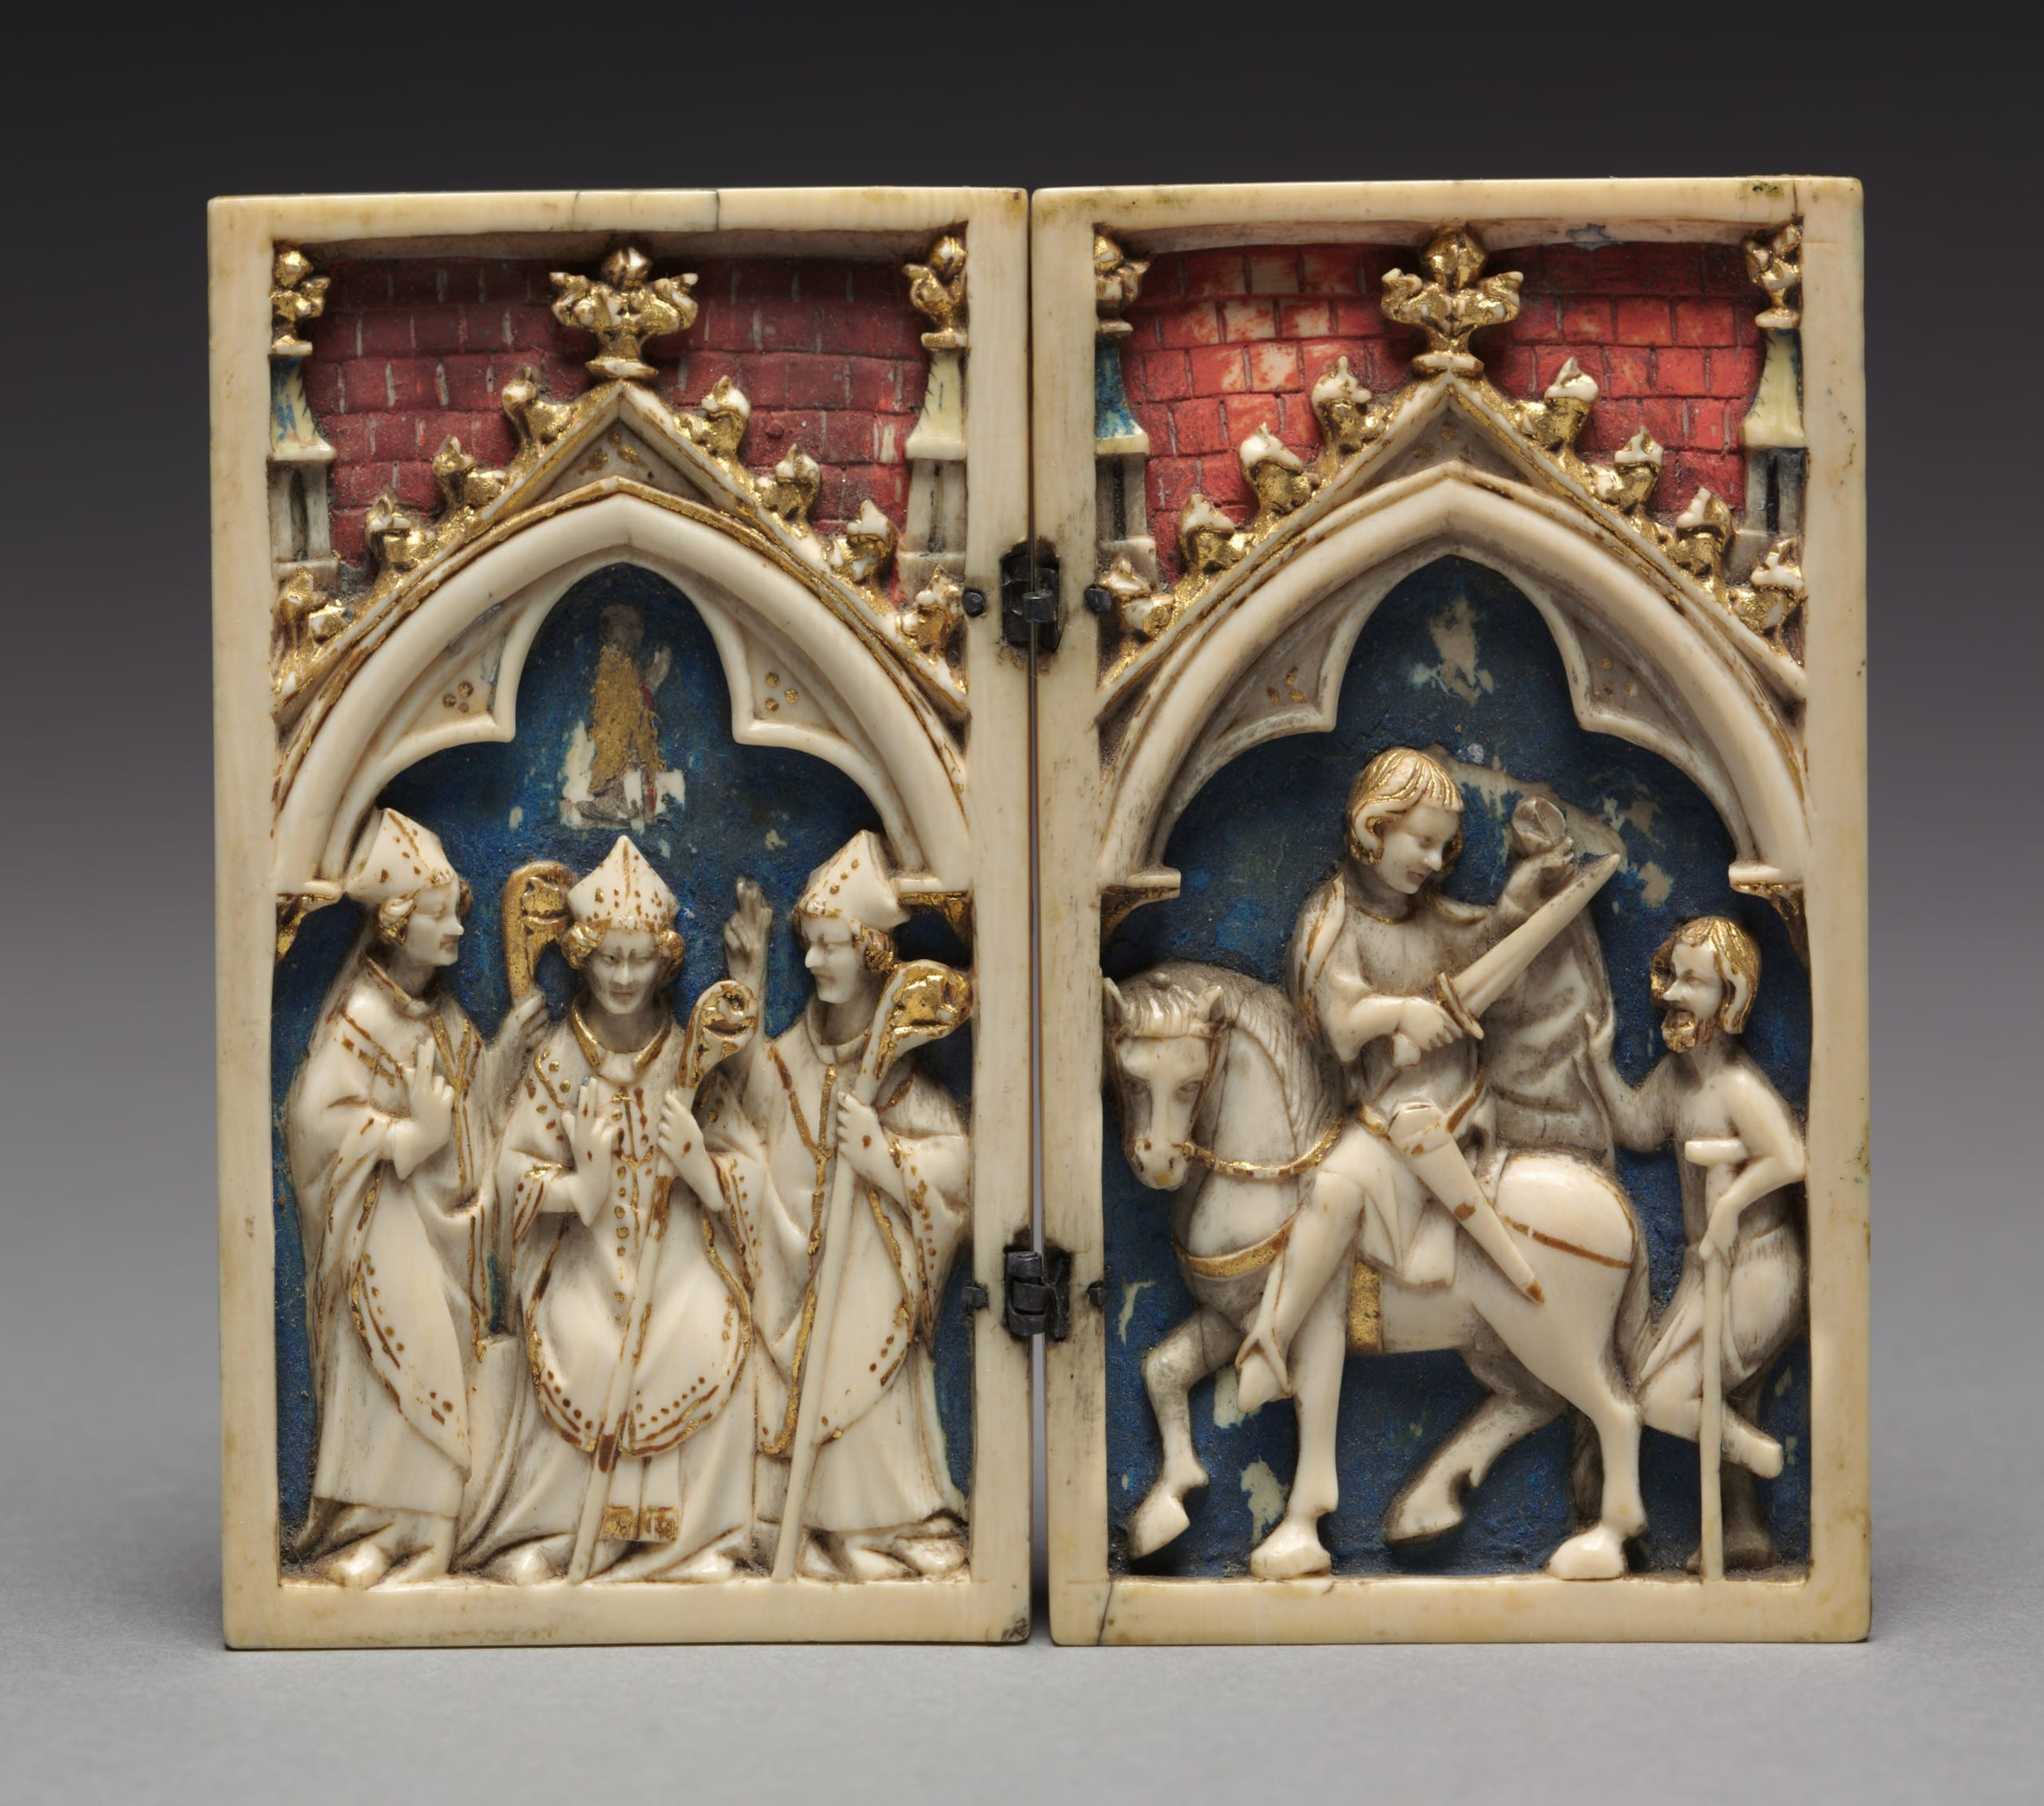 Diptych of the Life of St. Martin of Tours. Cologne, 1340-1360